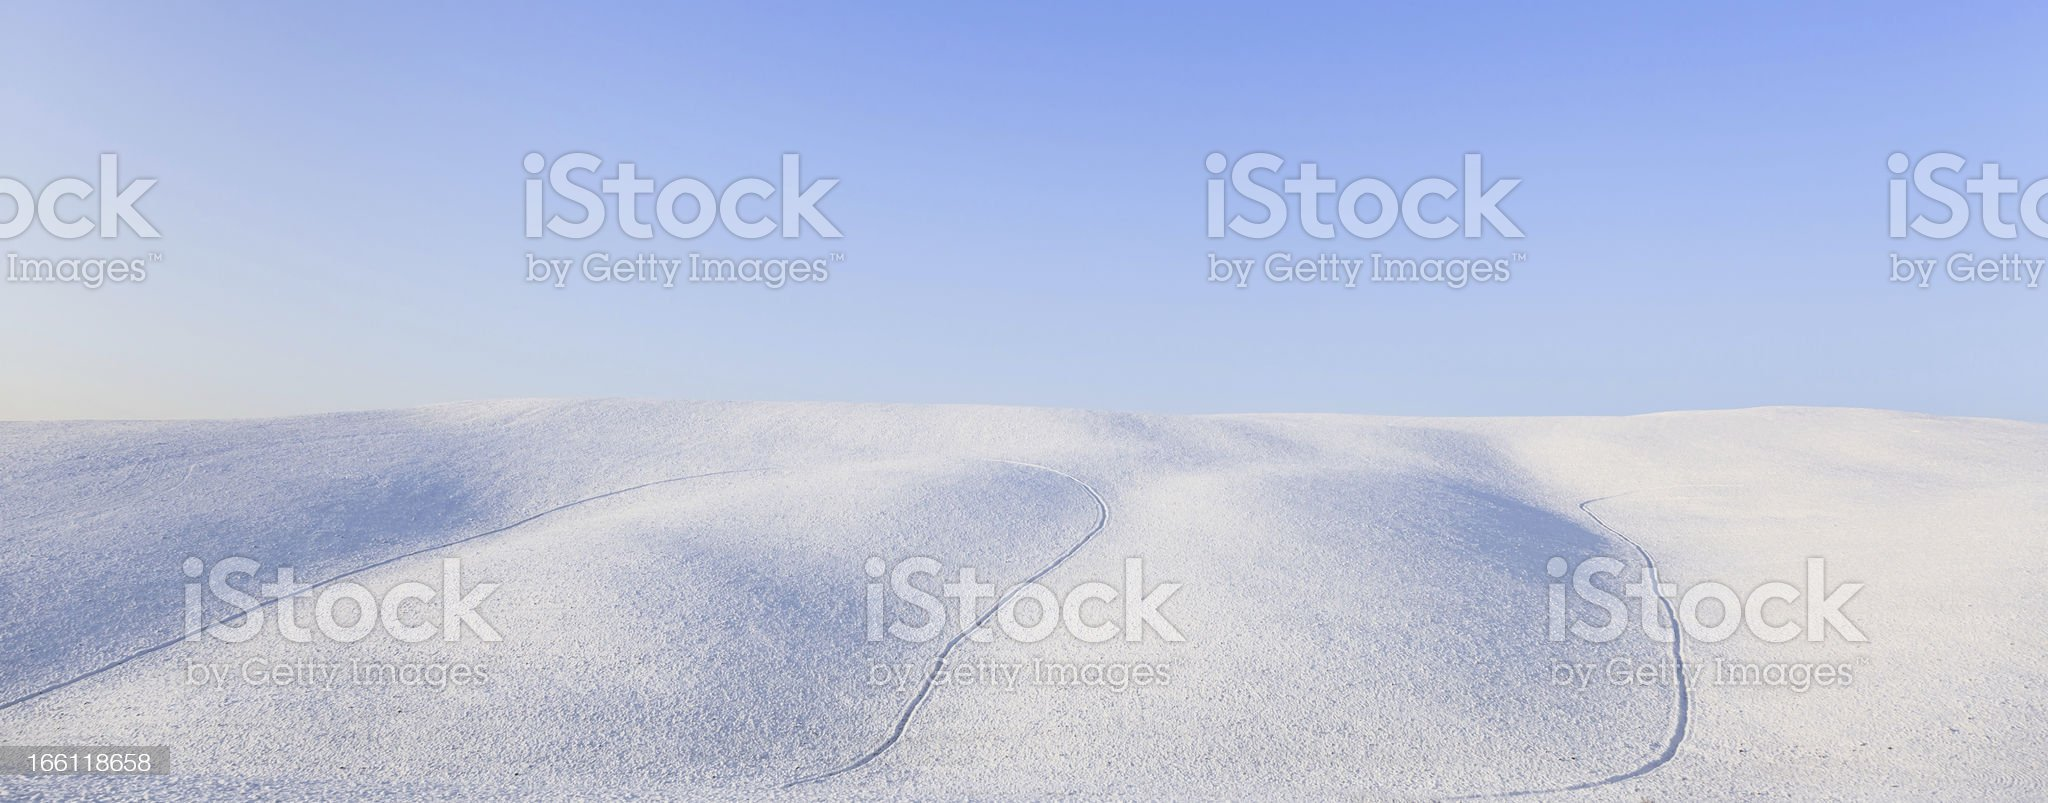 Panoramic snow rolling hills landscape in winter. Tuscany, Italy royalty-free stock photo